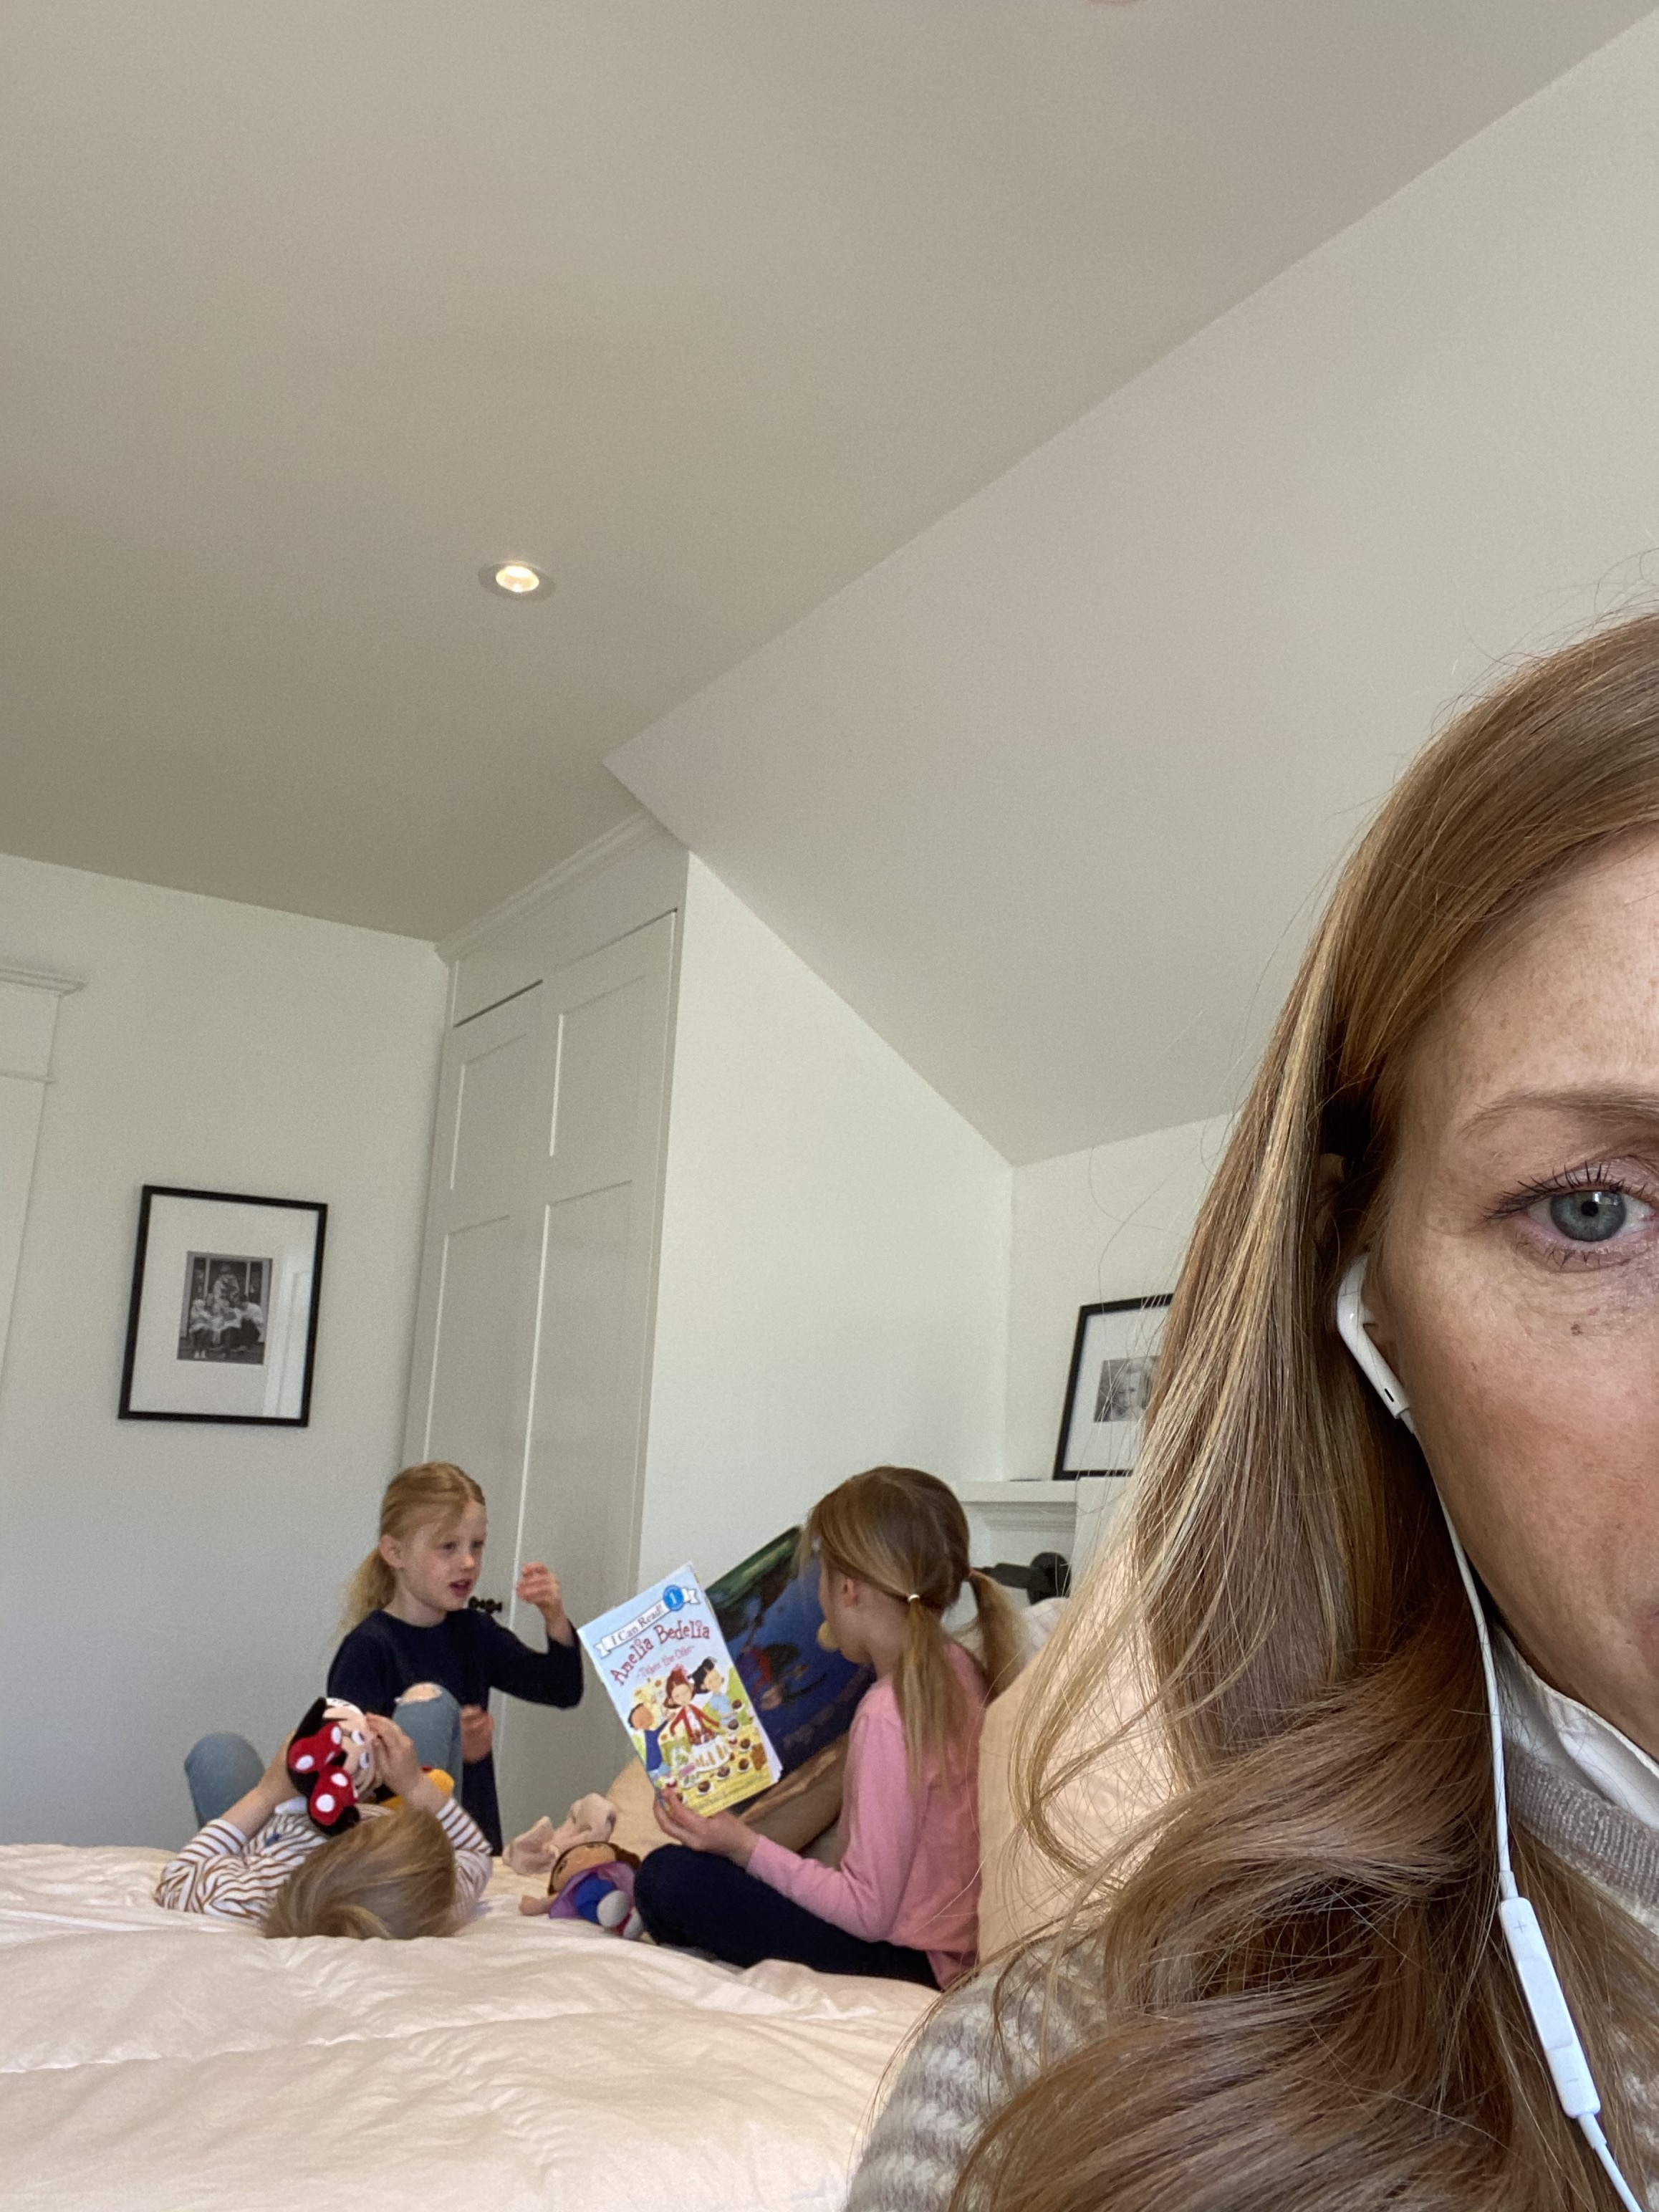 Martha Switzer on a conference call while three children play in the background